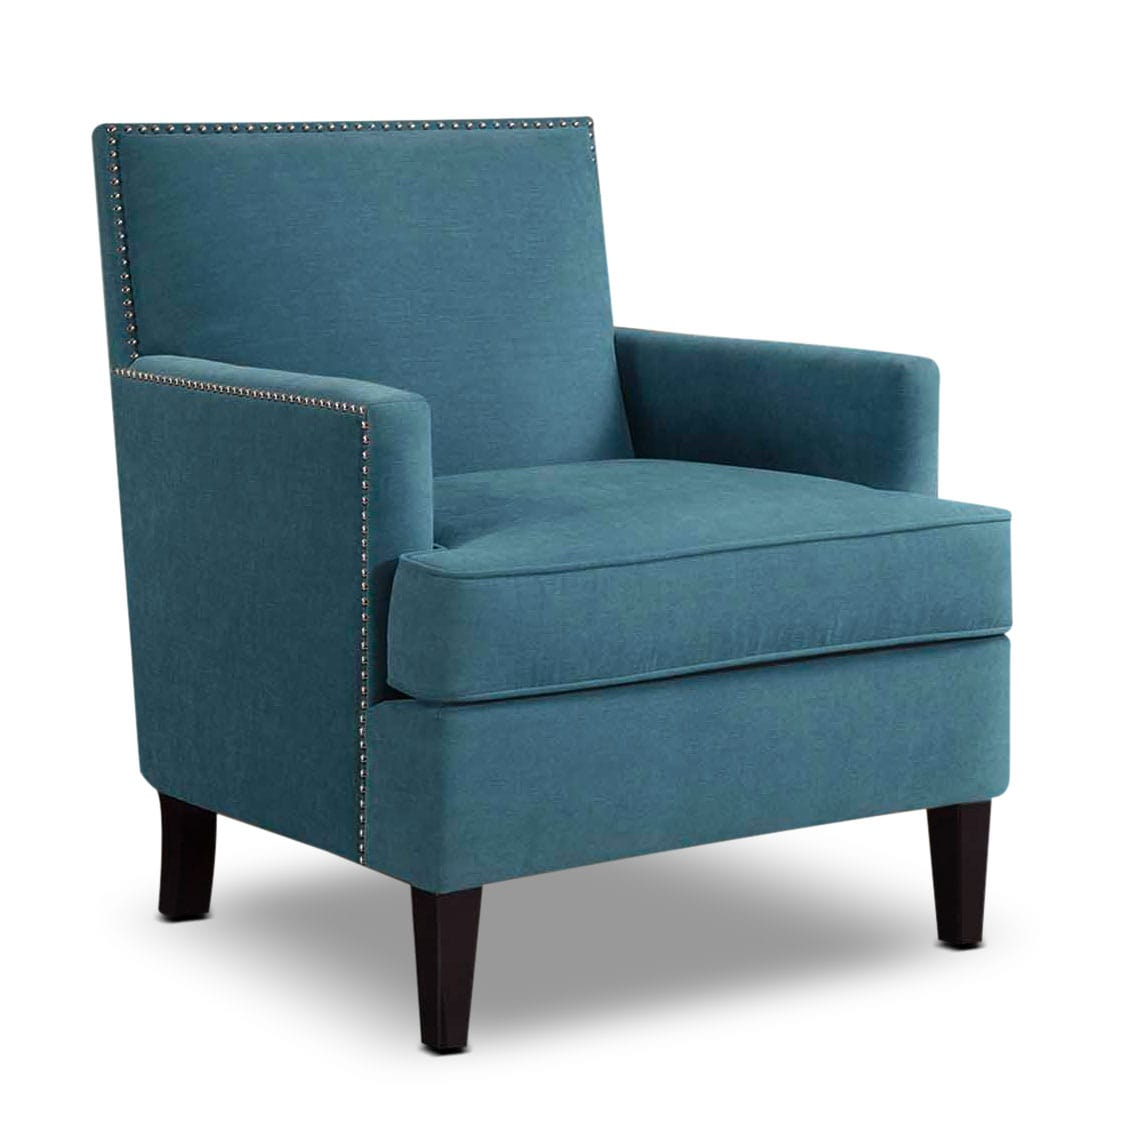 Blue Accent Chair With Arms Astrid Accent Chair Blue American Signature Furniture